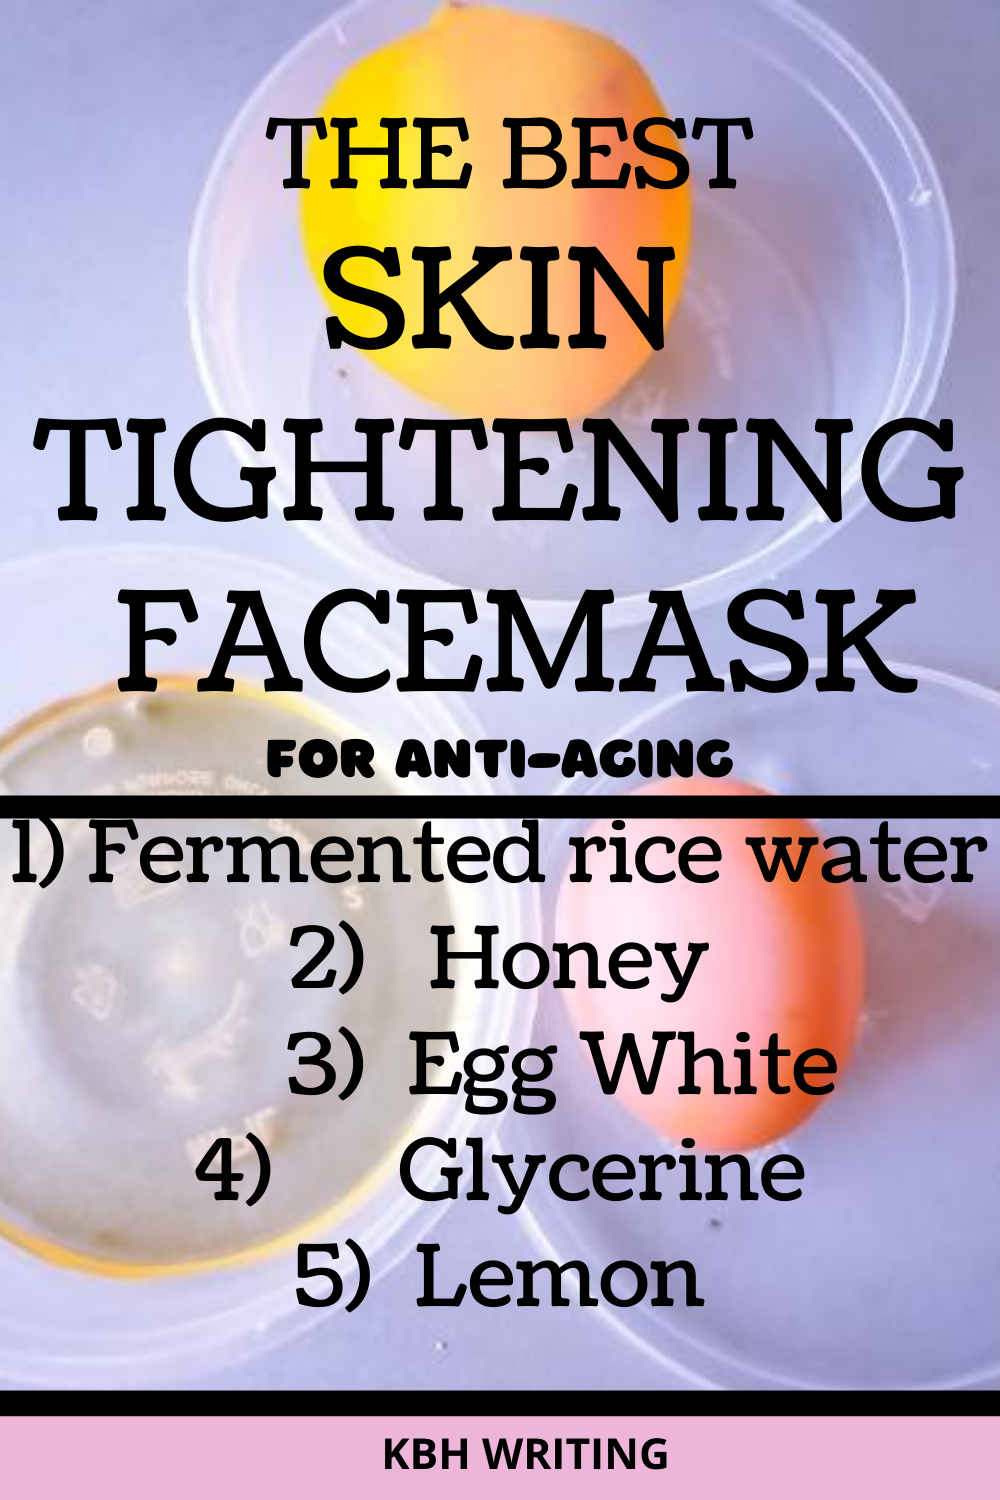 How to Use Rice Water For Skin Tightening and Whitening